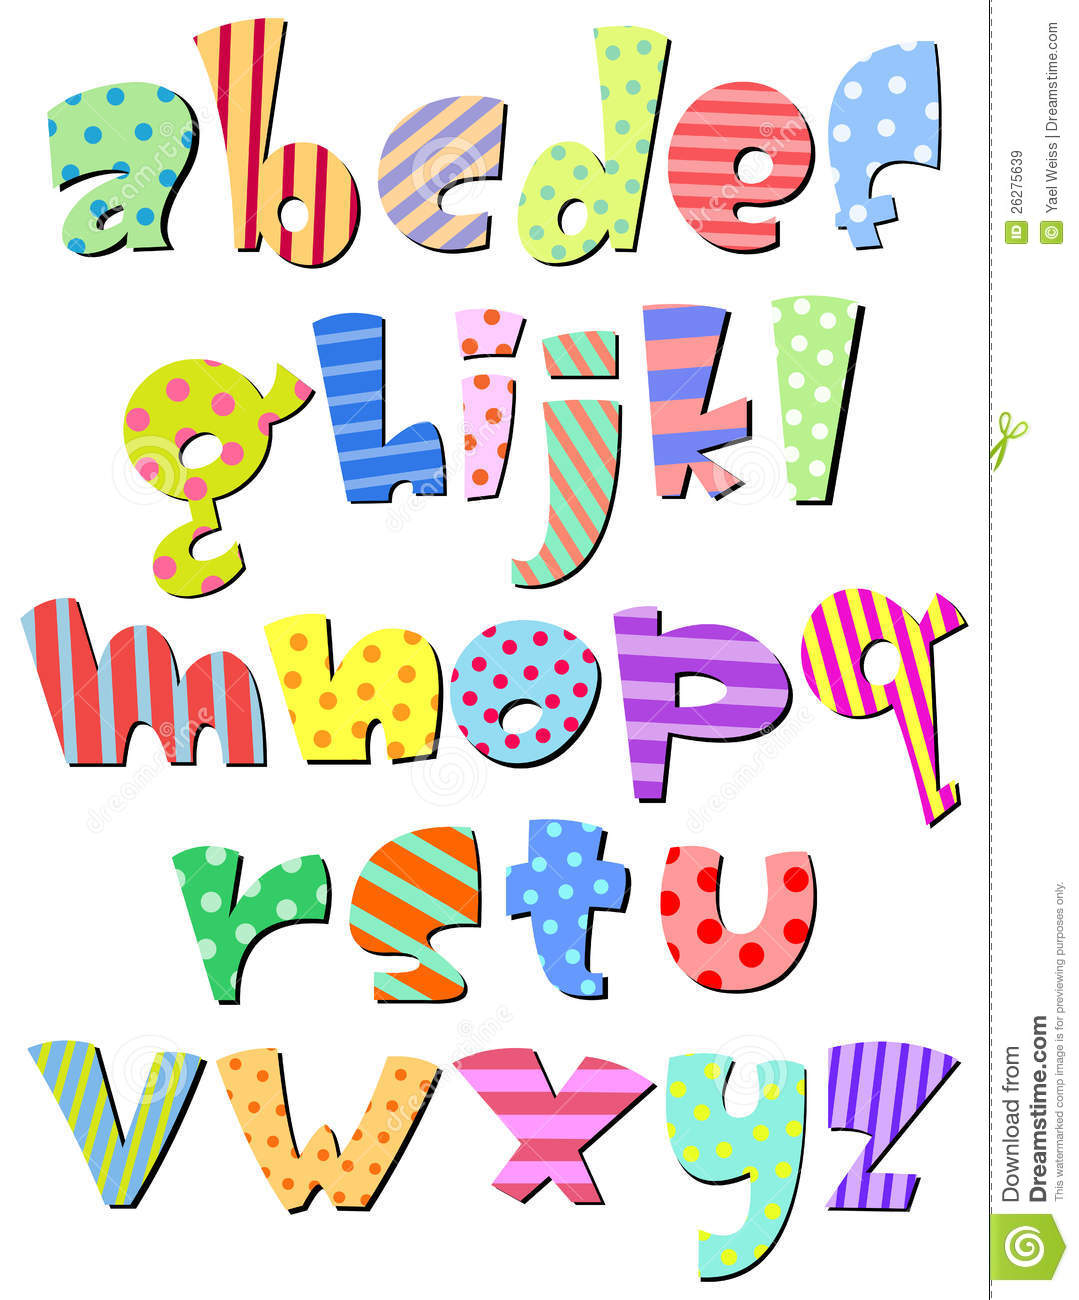 Lowercase alphabet clipart clip black and white stock Lower Case Comic Alphabet Royalty Free Stock Images - Image: 26275639 clip black and white stock